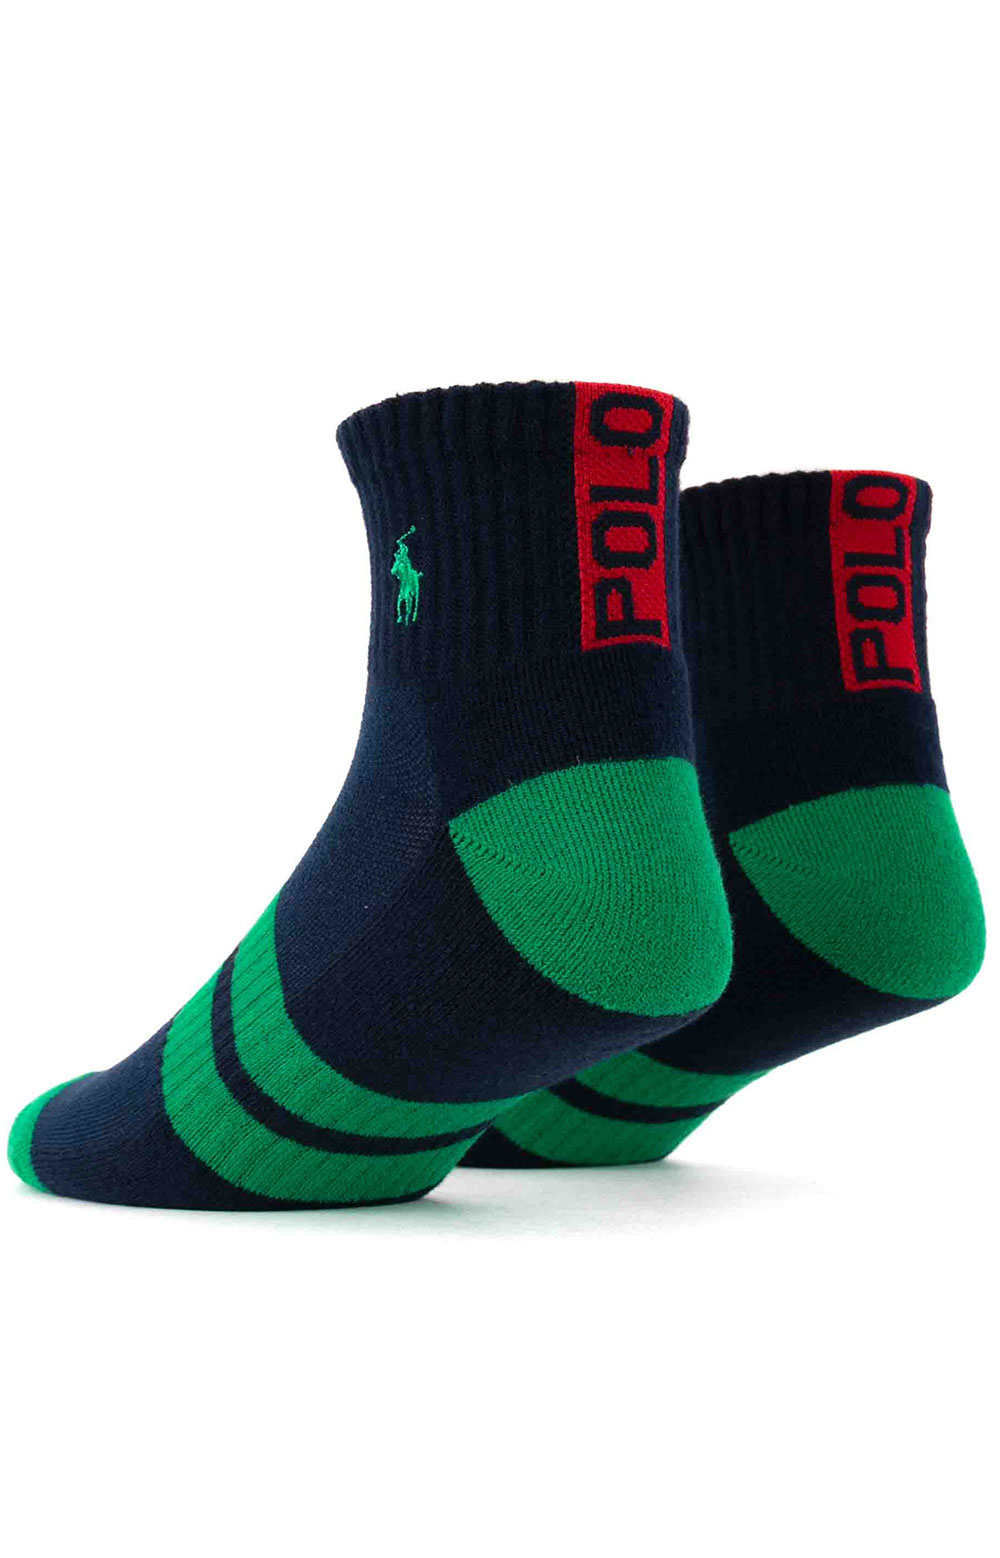 Colorblock Cushioned Quarter Socks - 6 Pack 11